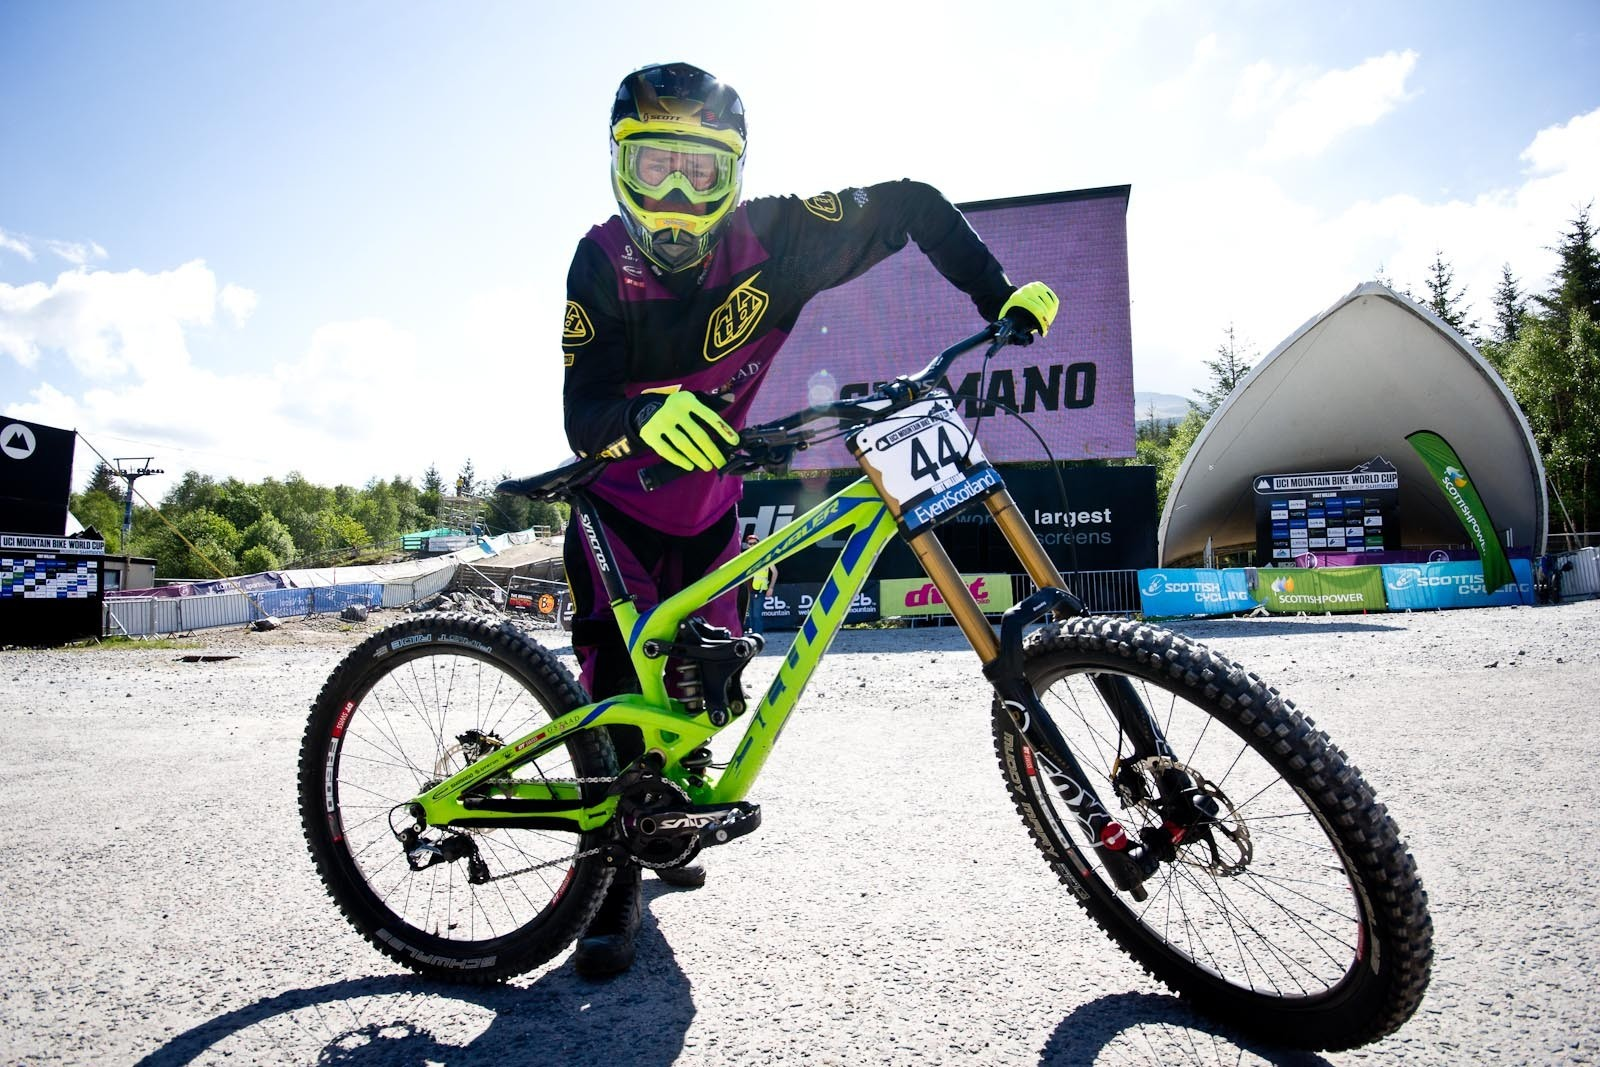 Brendan Fairclough's Scott Gambler - 24 Pro DH BIkes from Fort William World Cup - Mountain Biking Pictures - Vital MTB